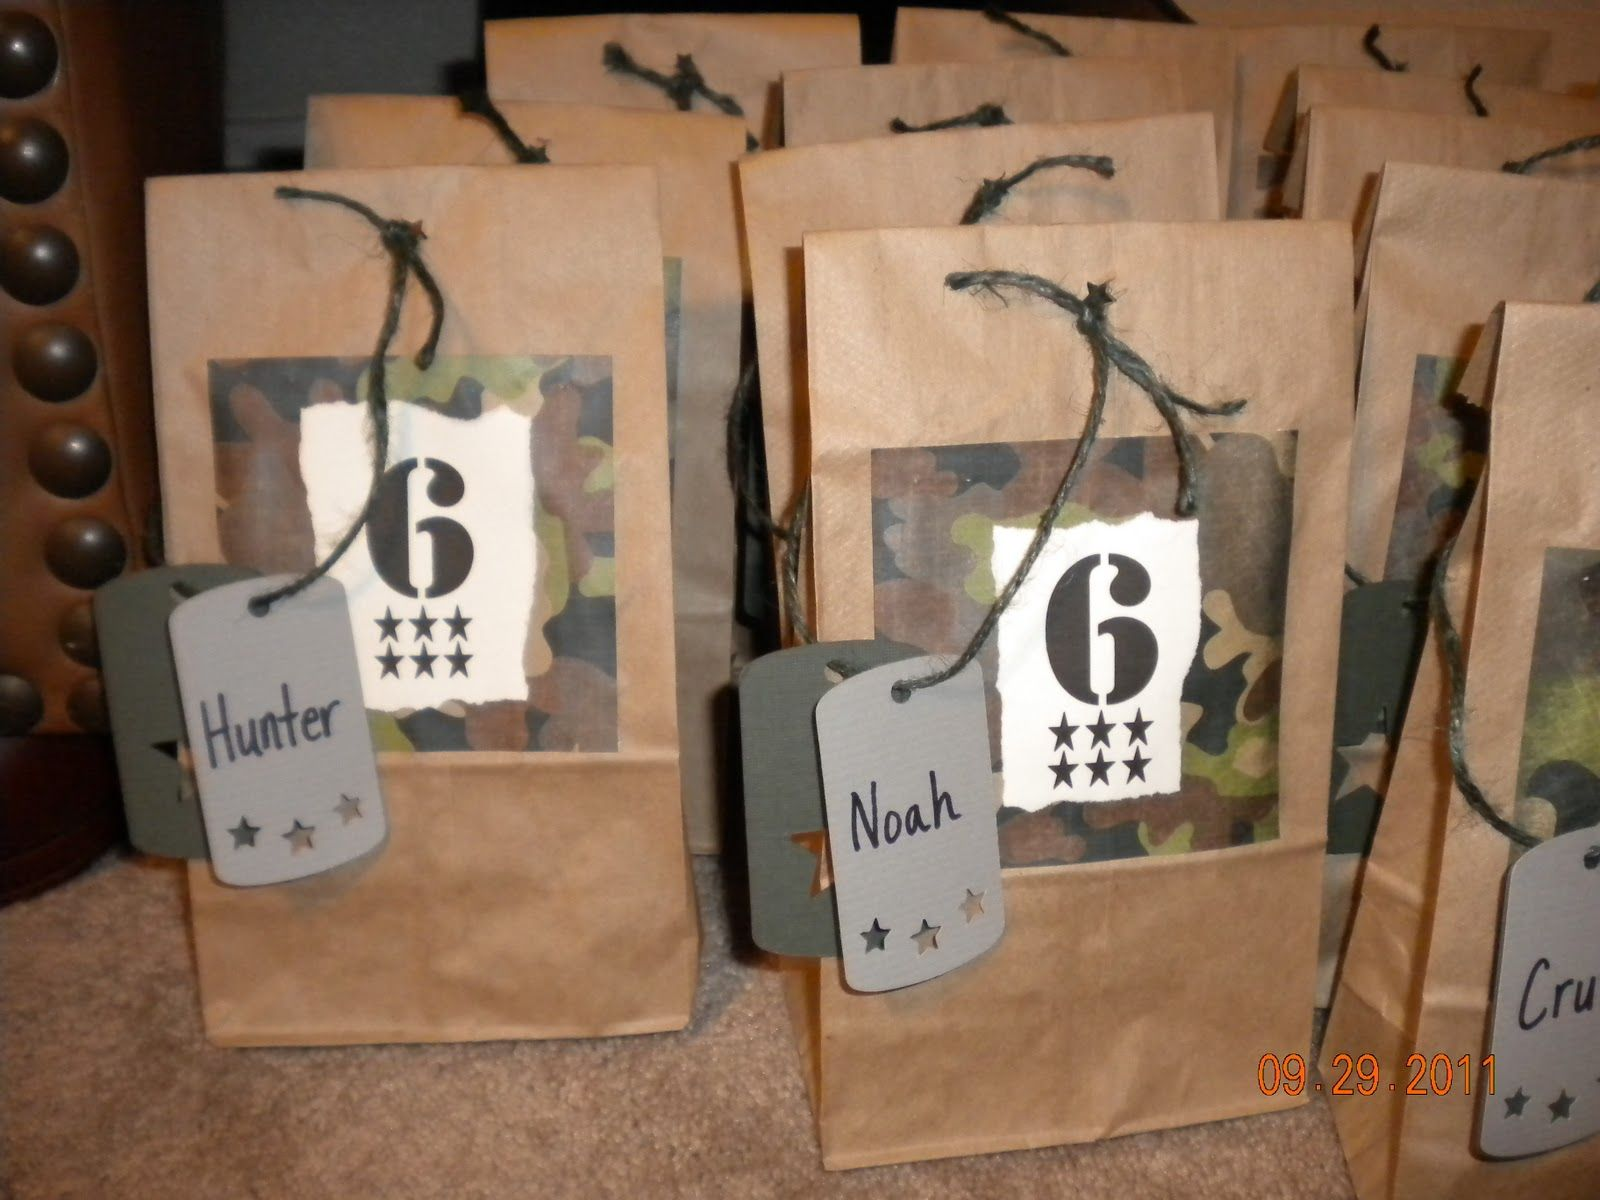 Army Party Favor Bags Look Pretty Simple Enough To Make Still Want Use The Ones With Handles From Dollar Tree But Will Probably Decorate Them Sort